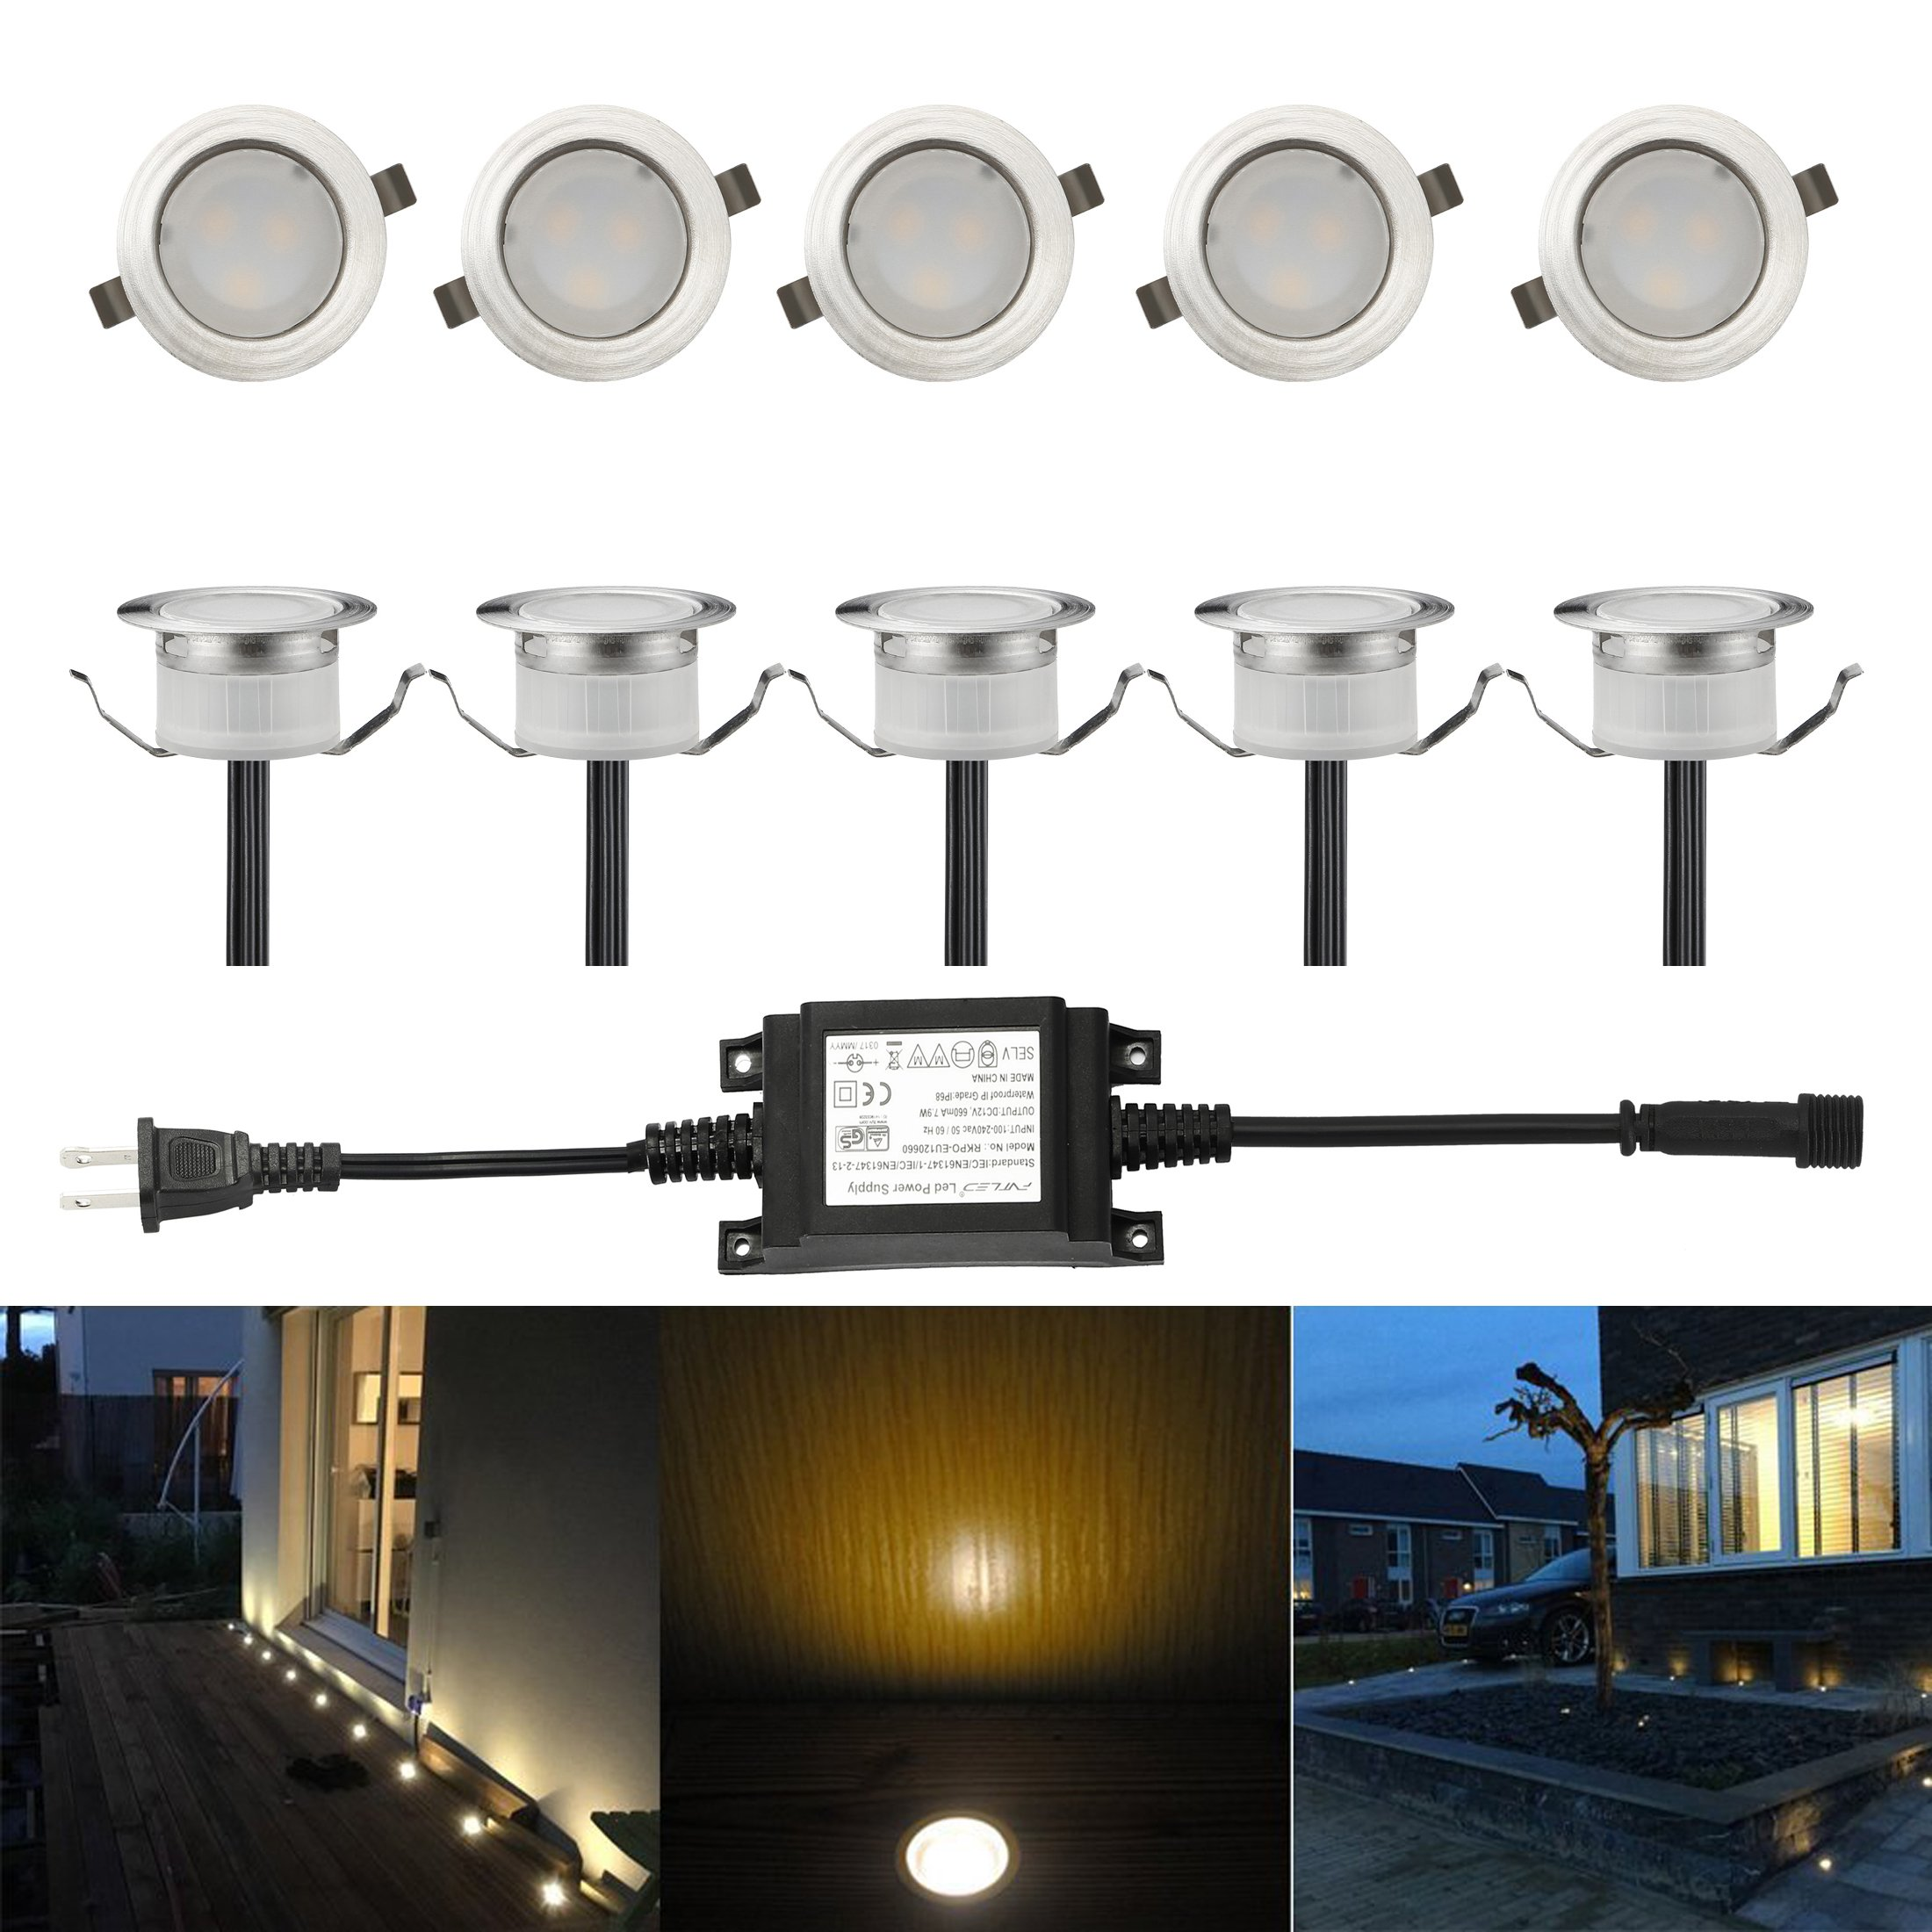 FVTLED Low Voltage LED Deck Light Waterproof Outdoor Garden Yard Decor Lamps Recessed Wood Decking Stair Landscape Pathway LED Step Lighting (10pcs, Warm White)